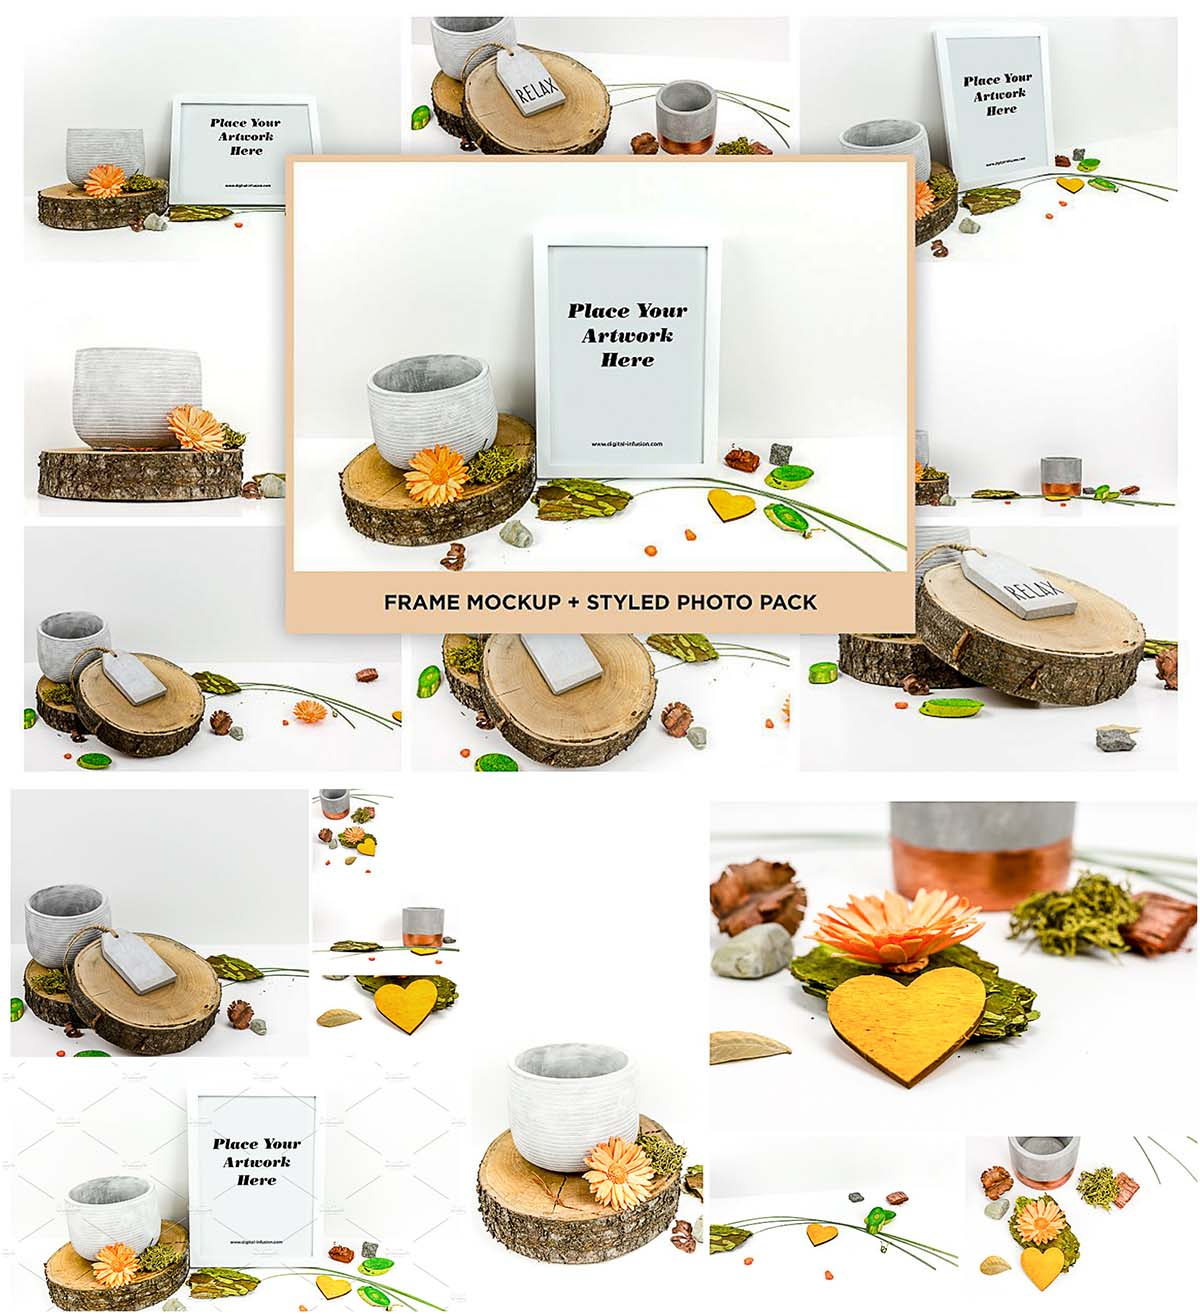 Styled photo frames and wood